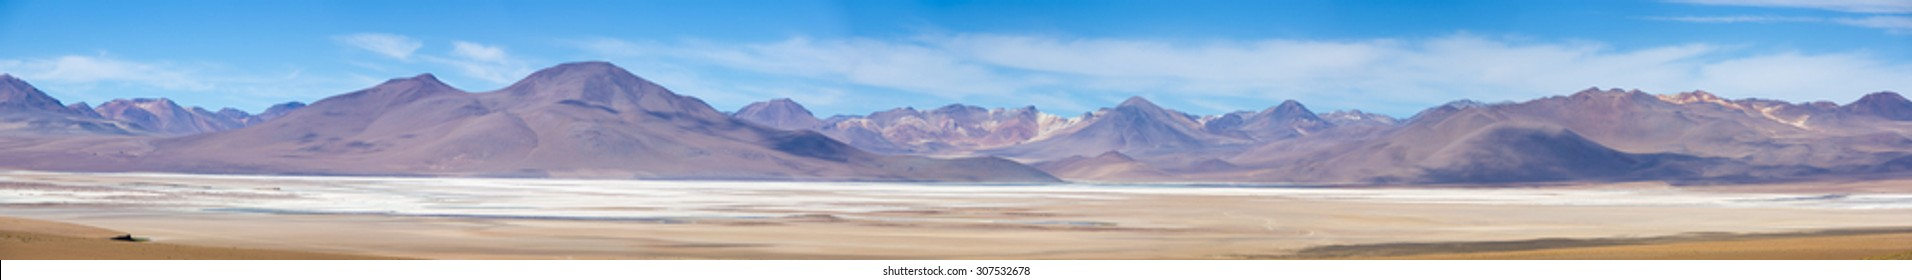 Panorama of mountains and white salt pan in Eduardo Avaroa Andean Fauna National Reserve against a clear blue sky, Bolivia